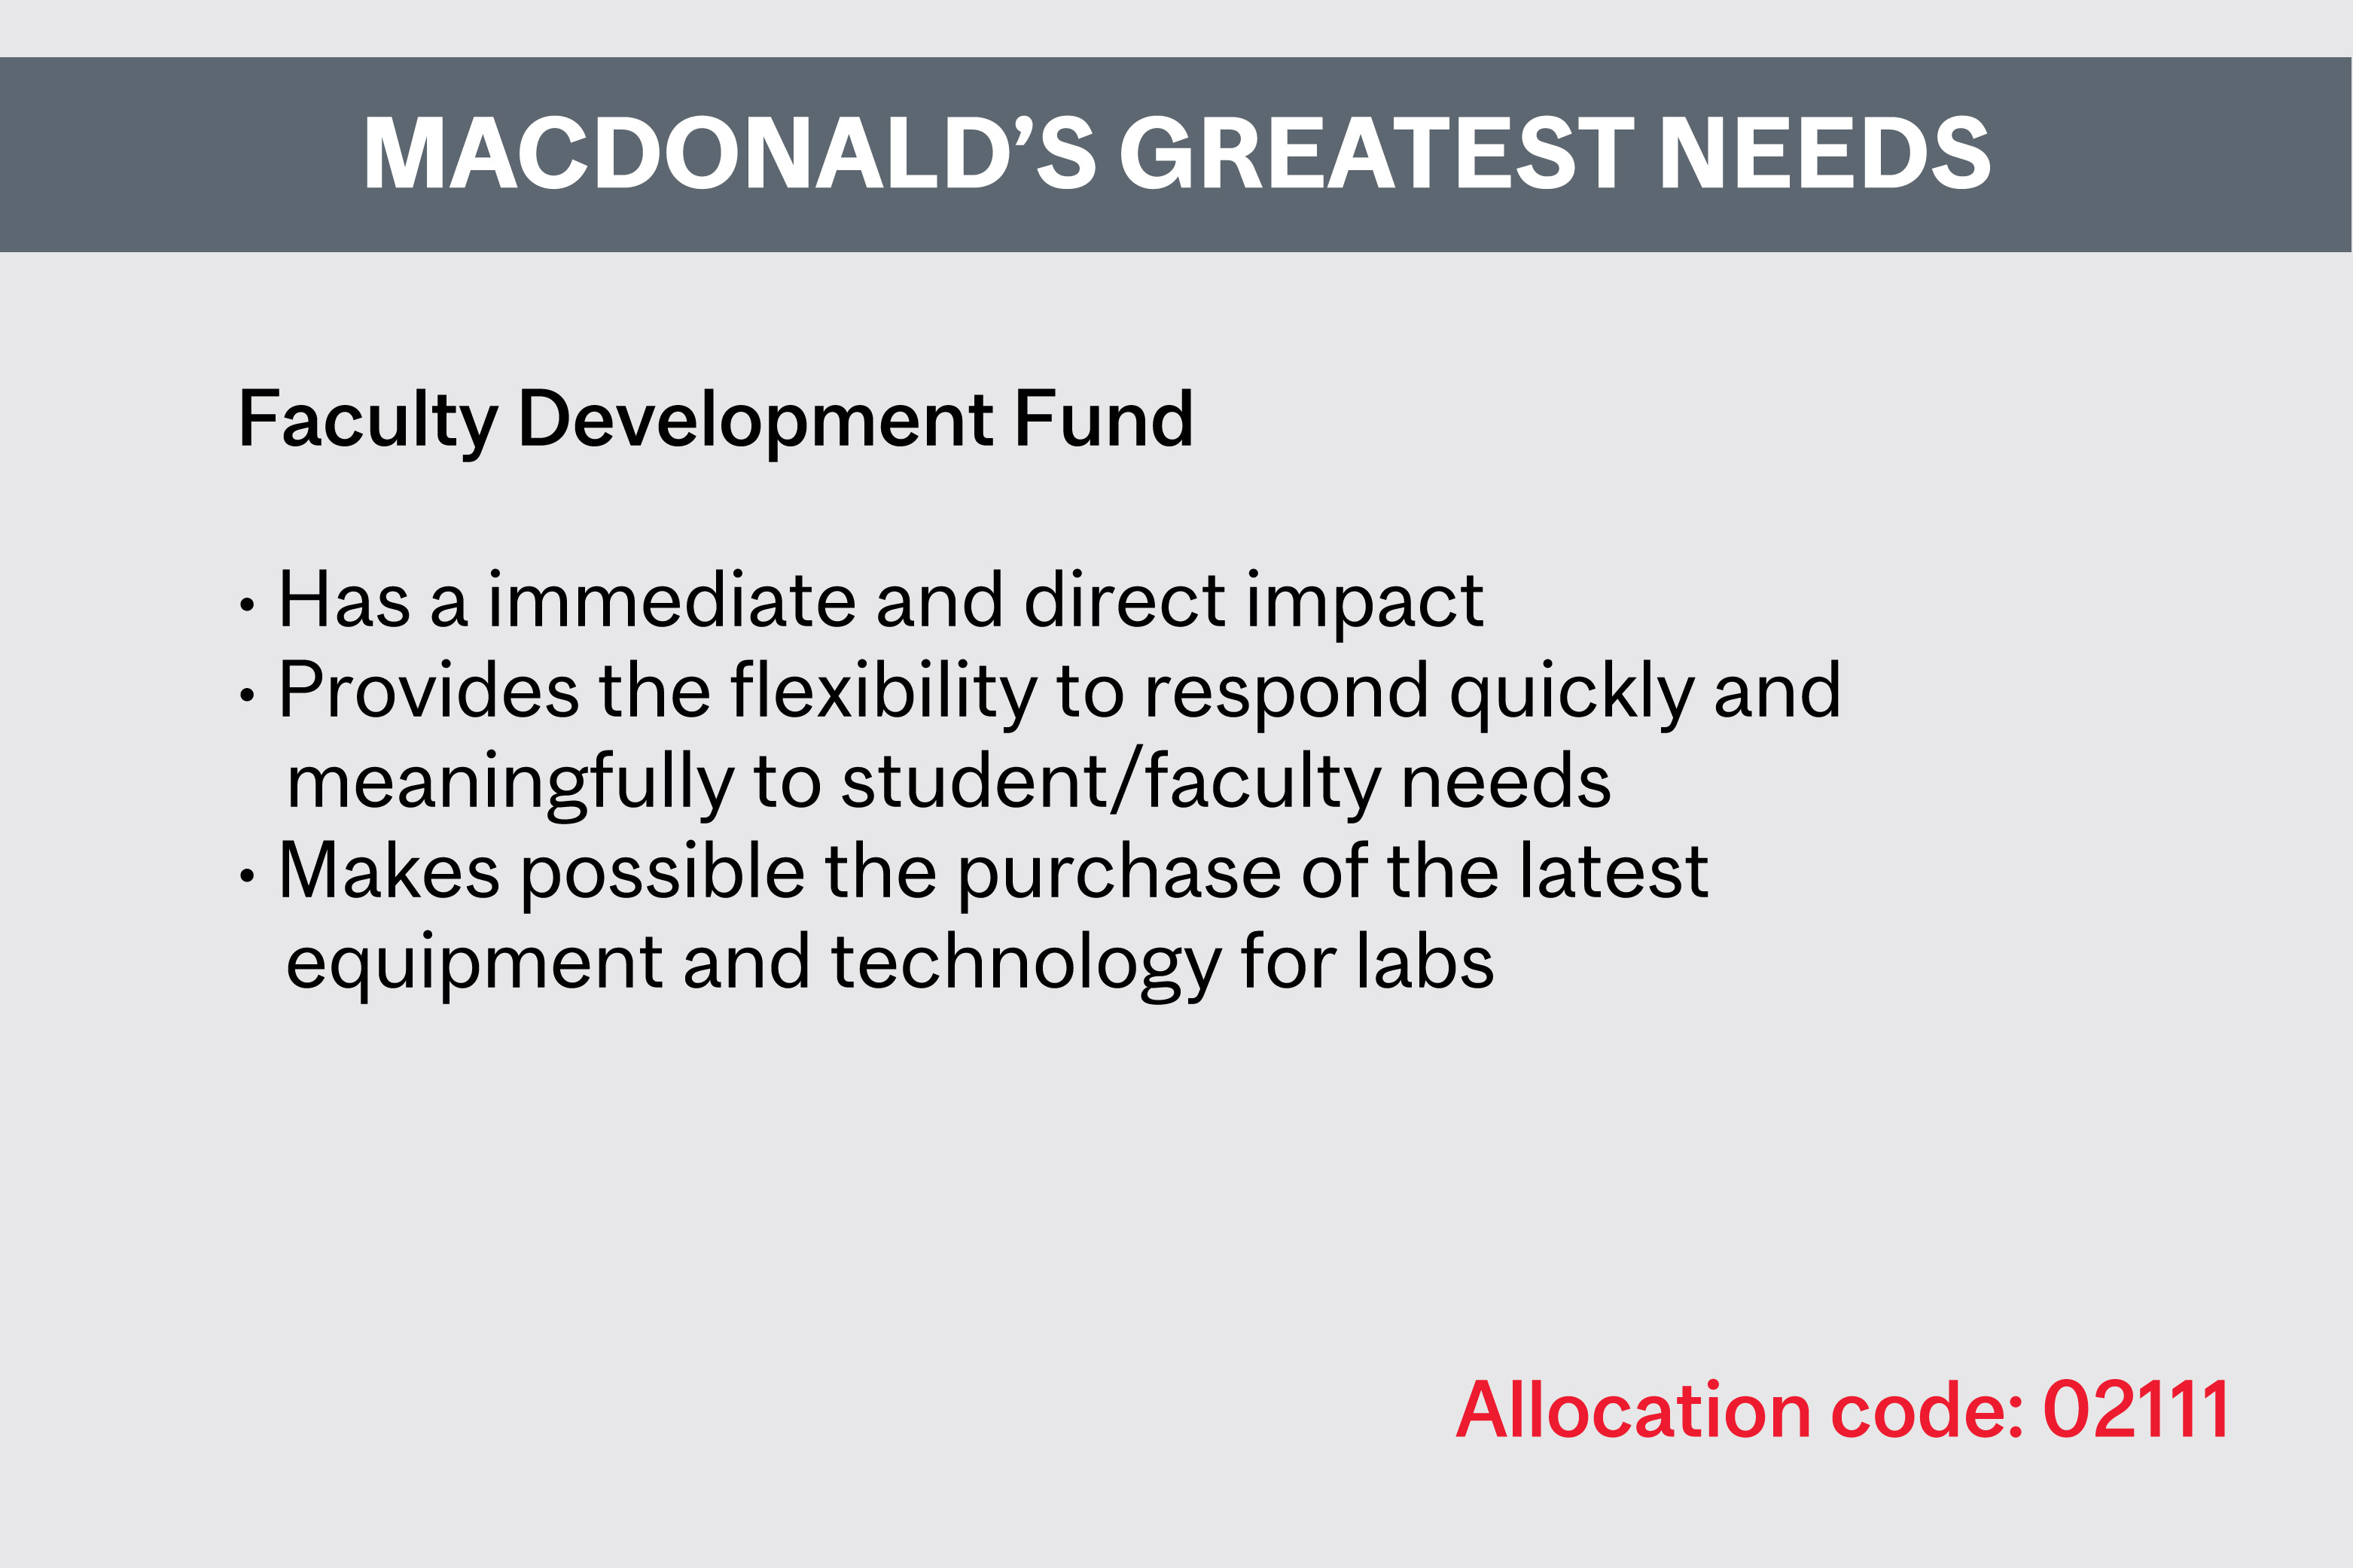 Giving Back to Mac - Macdonald's Greatest Needs